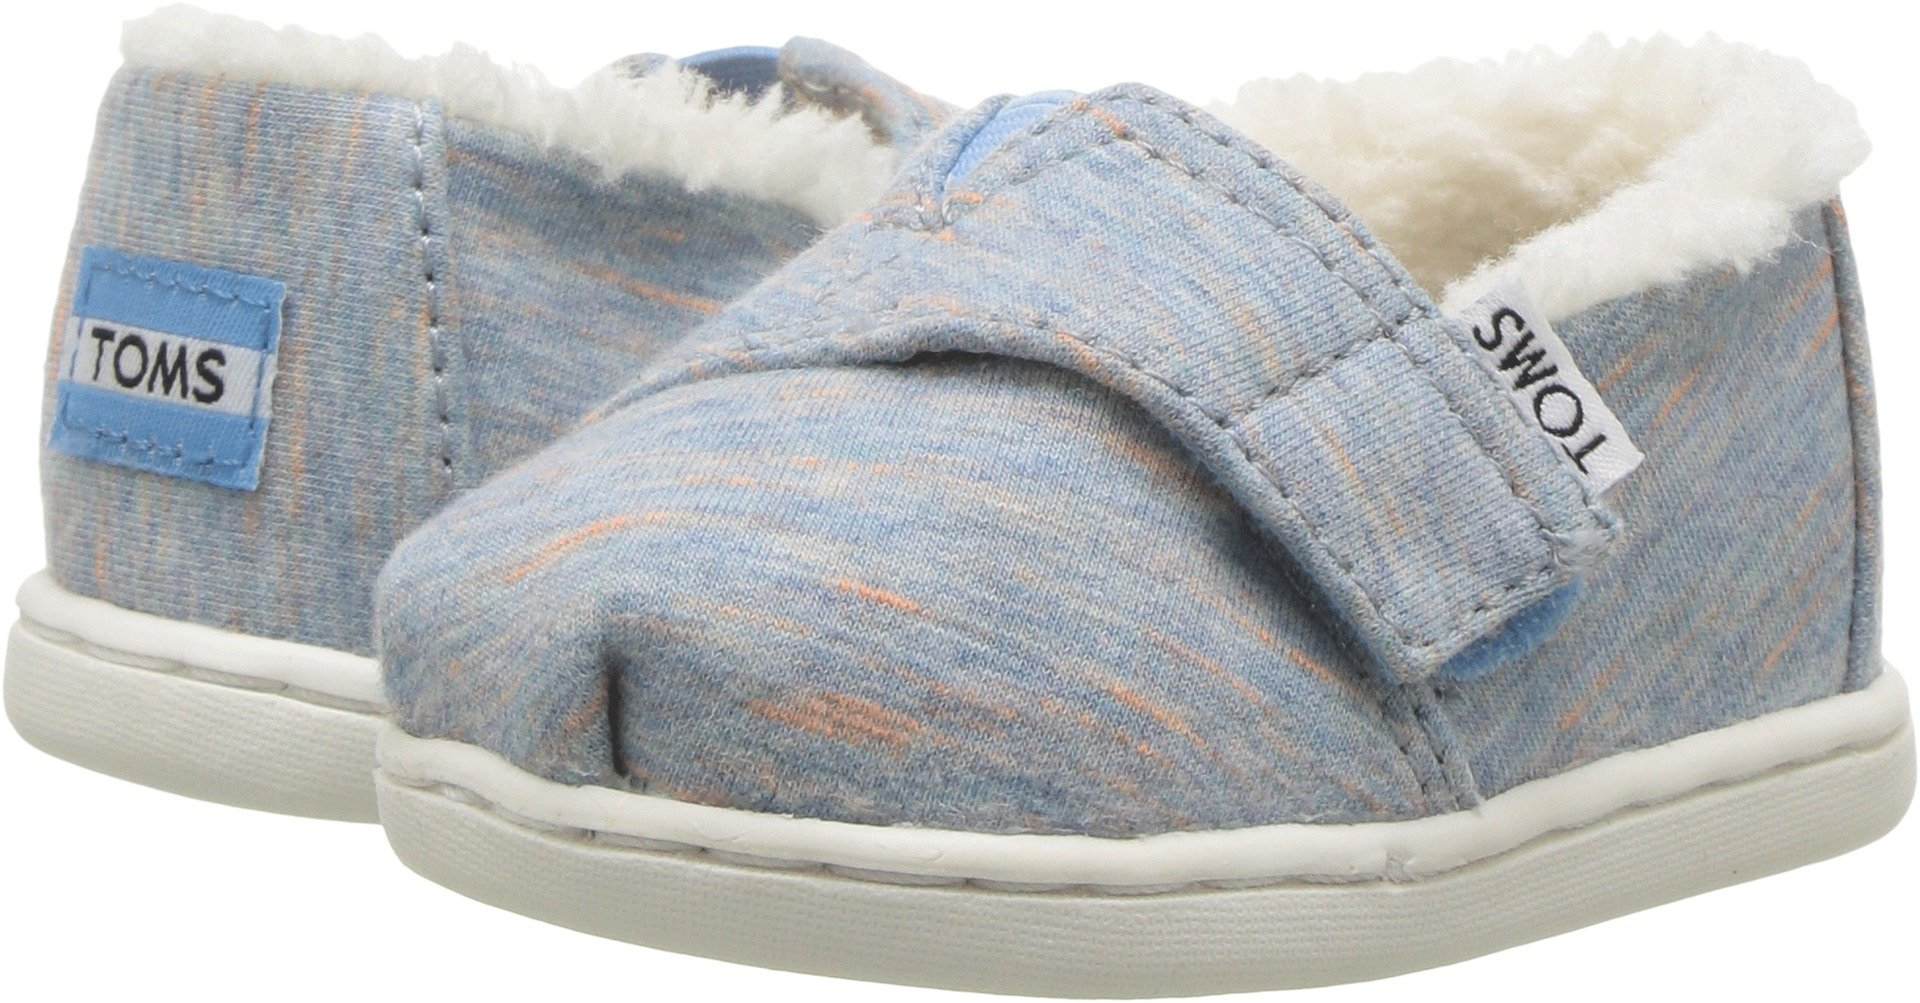 TOMS Kids Baby Girl's Alpargata (Infant/Toddler/Little Kid) Alaskan Blue Heather Jersey/Faux Shearling 10 M US Toddler